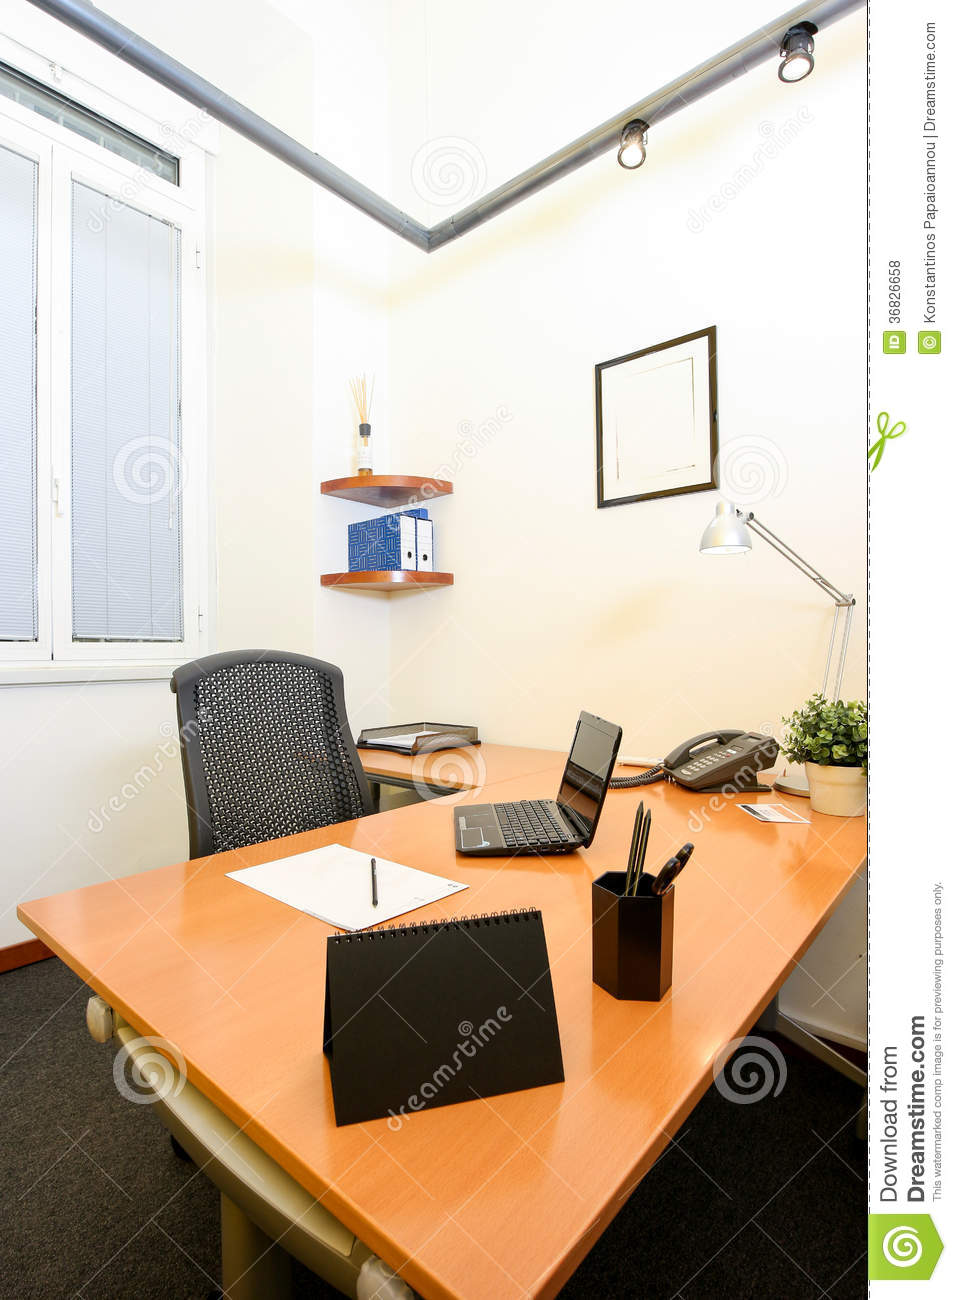 Modern office royalty free stock photos image 36826658 for Contemporary commercial office furniture